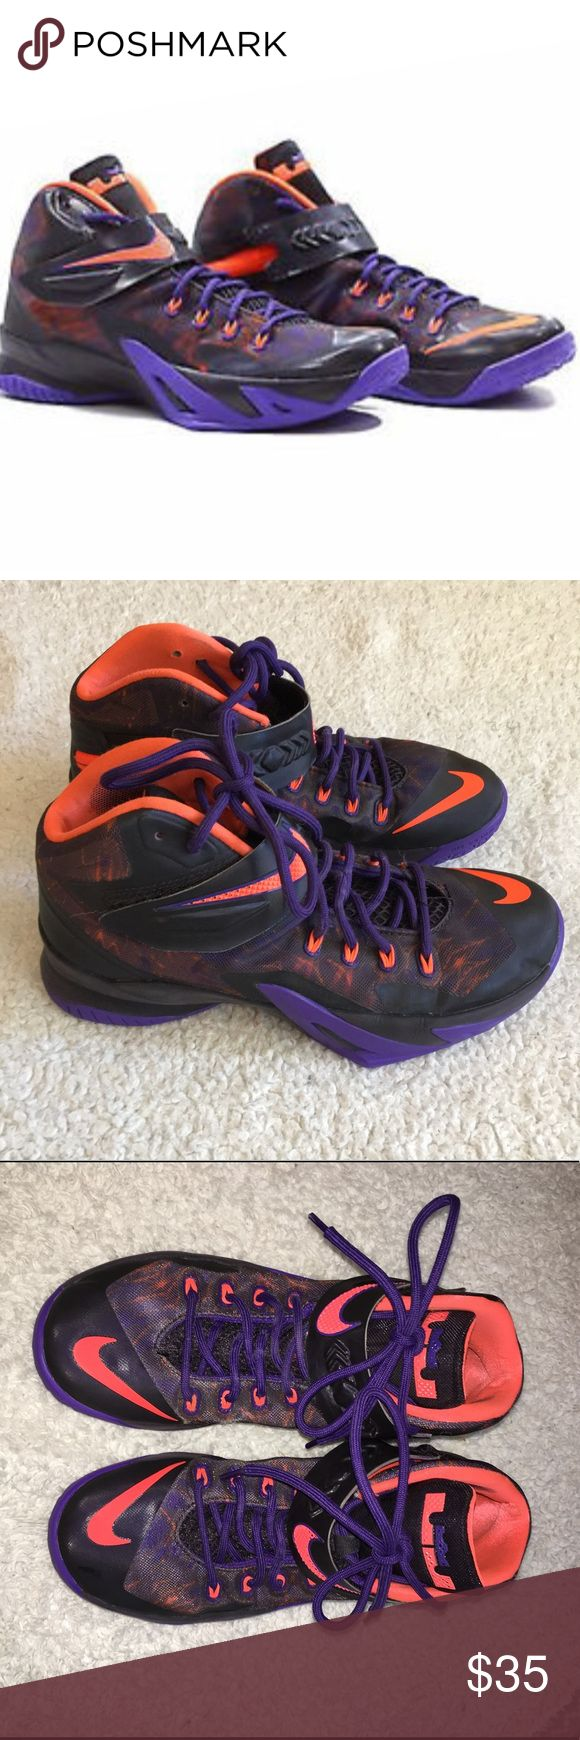 Nike Lebron Soldiers 8 Basketball Shoes Men's Sz8 Lebron Soldiers 8. Size 8 men's. Black, purple and orange. Basketball shoes. Worn only indoor basketball courts. Good condition. Two small tears on right shoe. Shown in photo. Nike Shoes Athletic Shoes